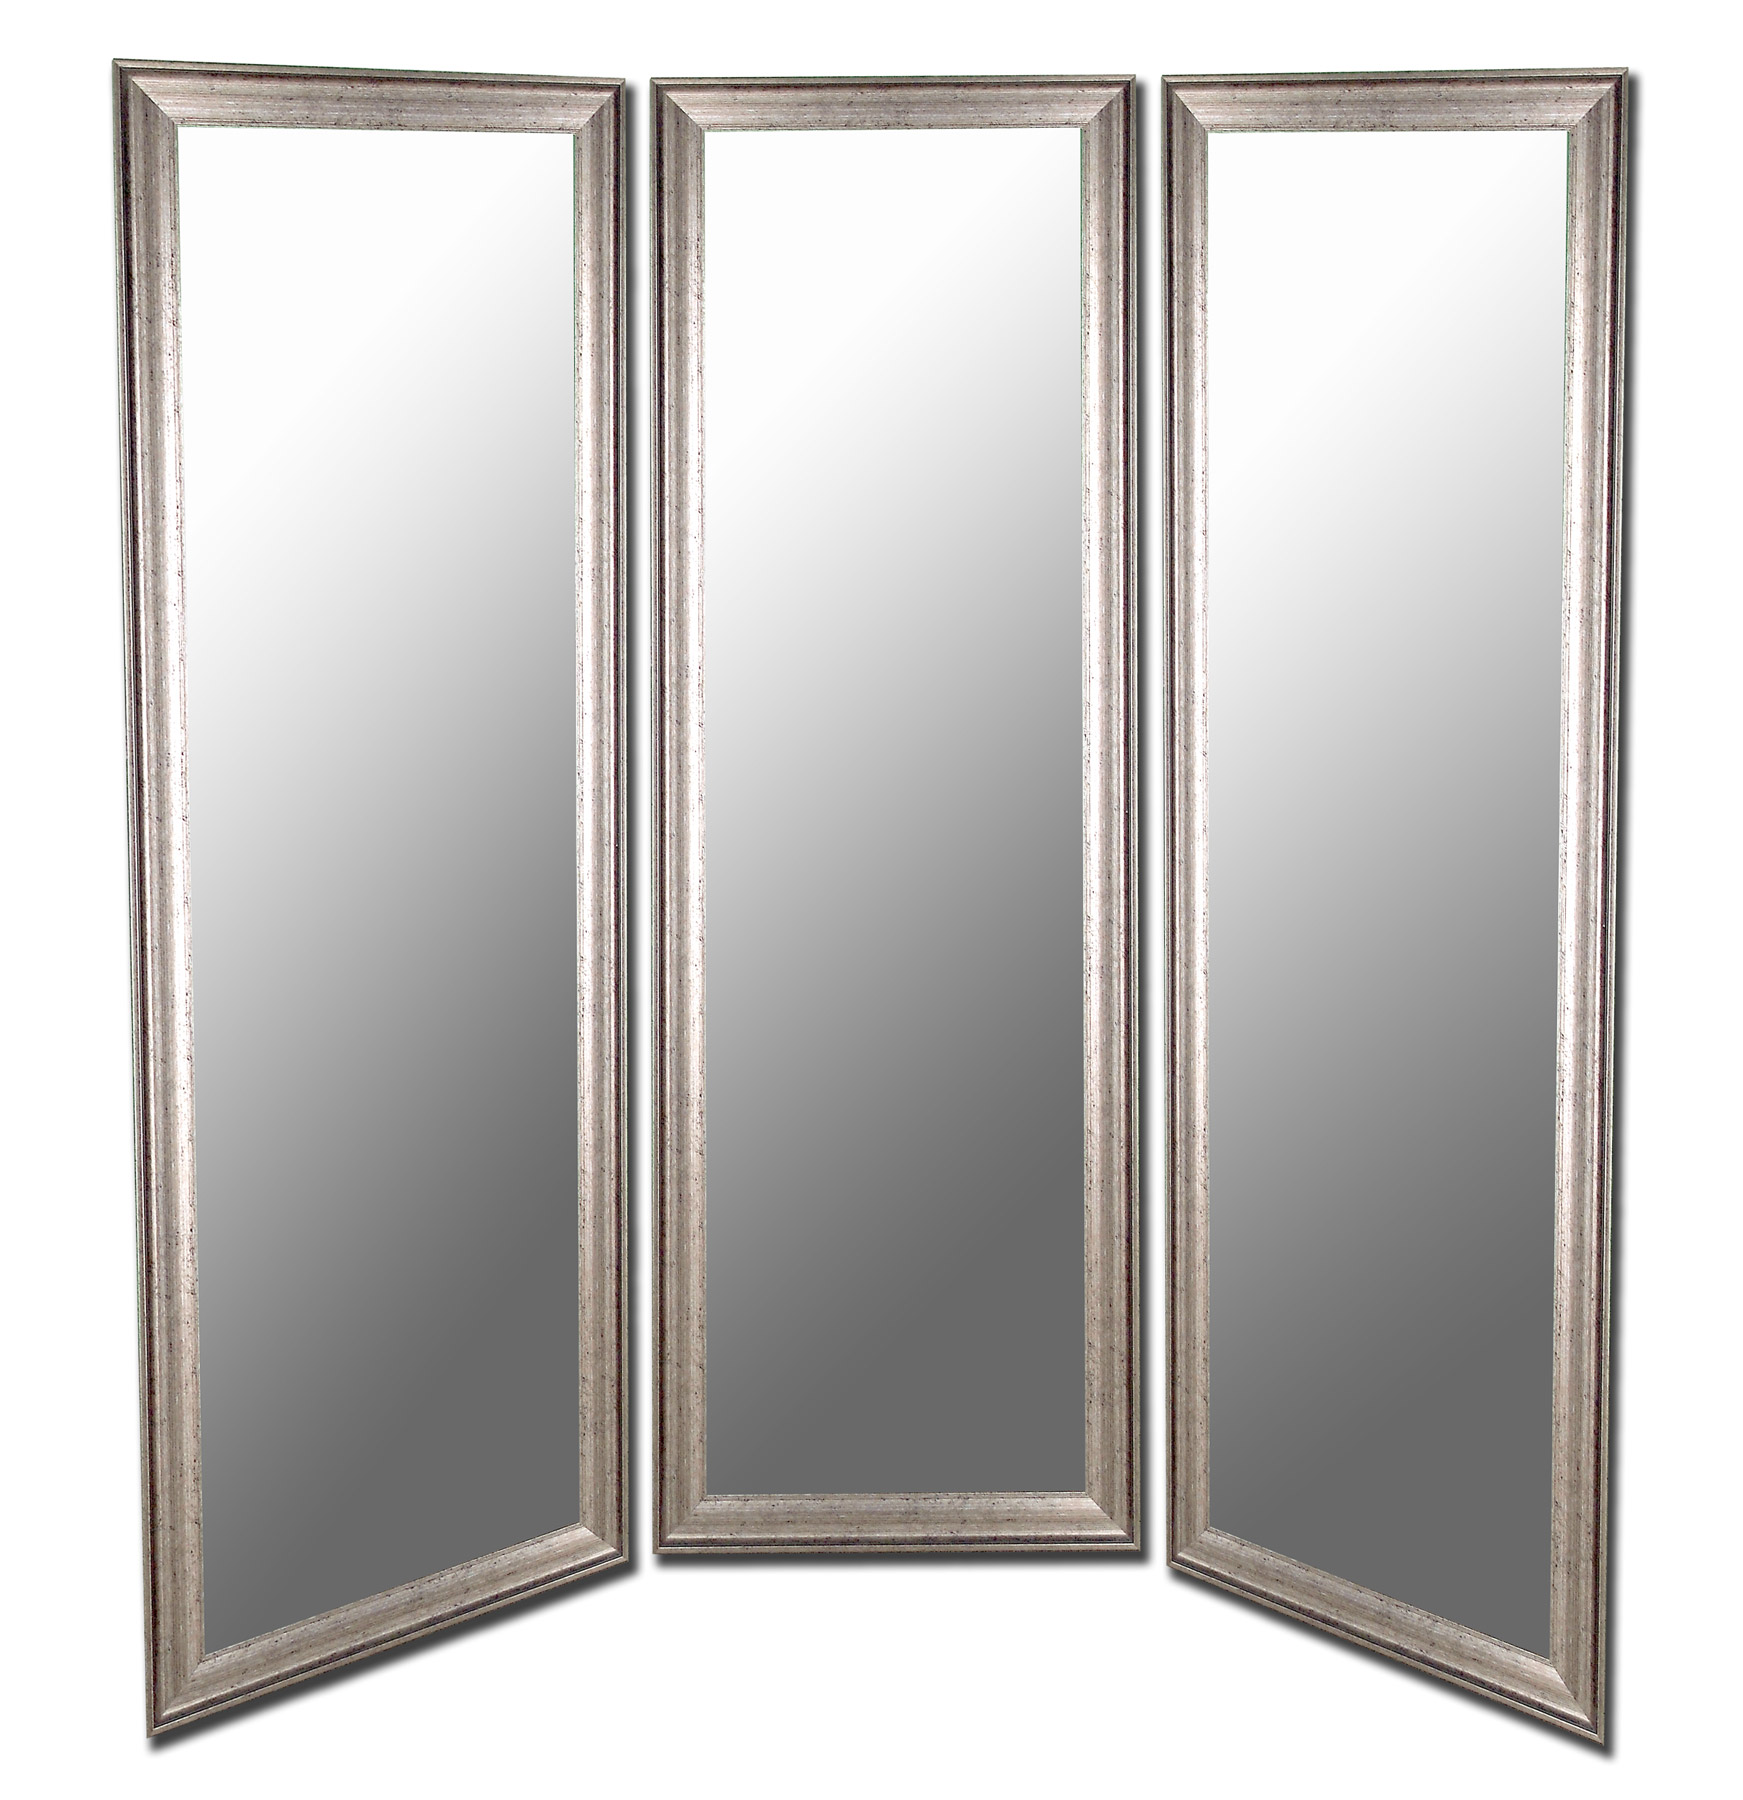 Hitch Erfield 6708 Pmrd Distressed Silver Black Trim 3 Panel Mirror